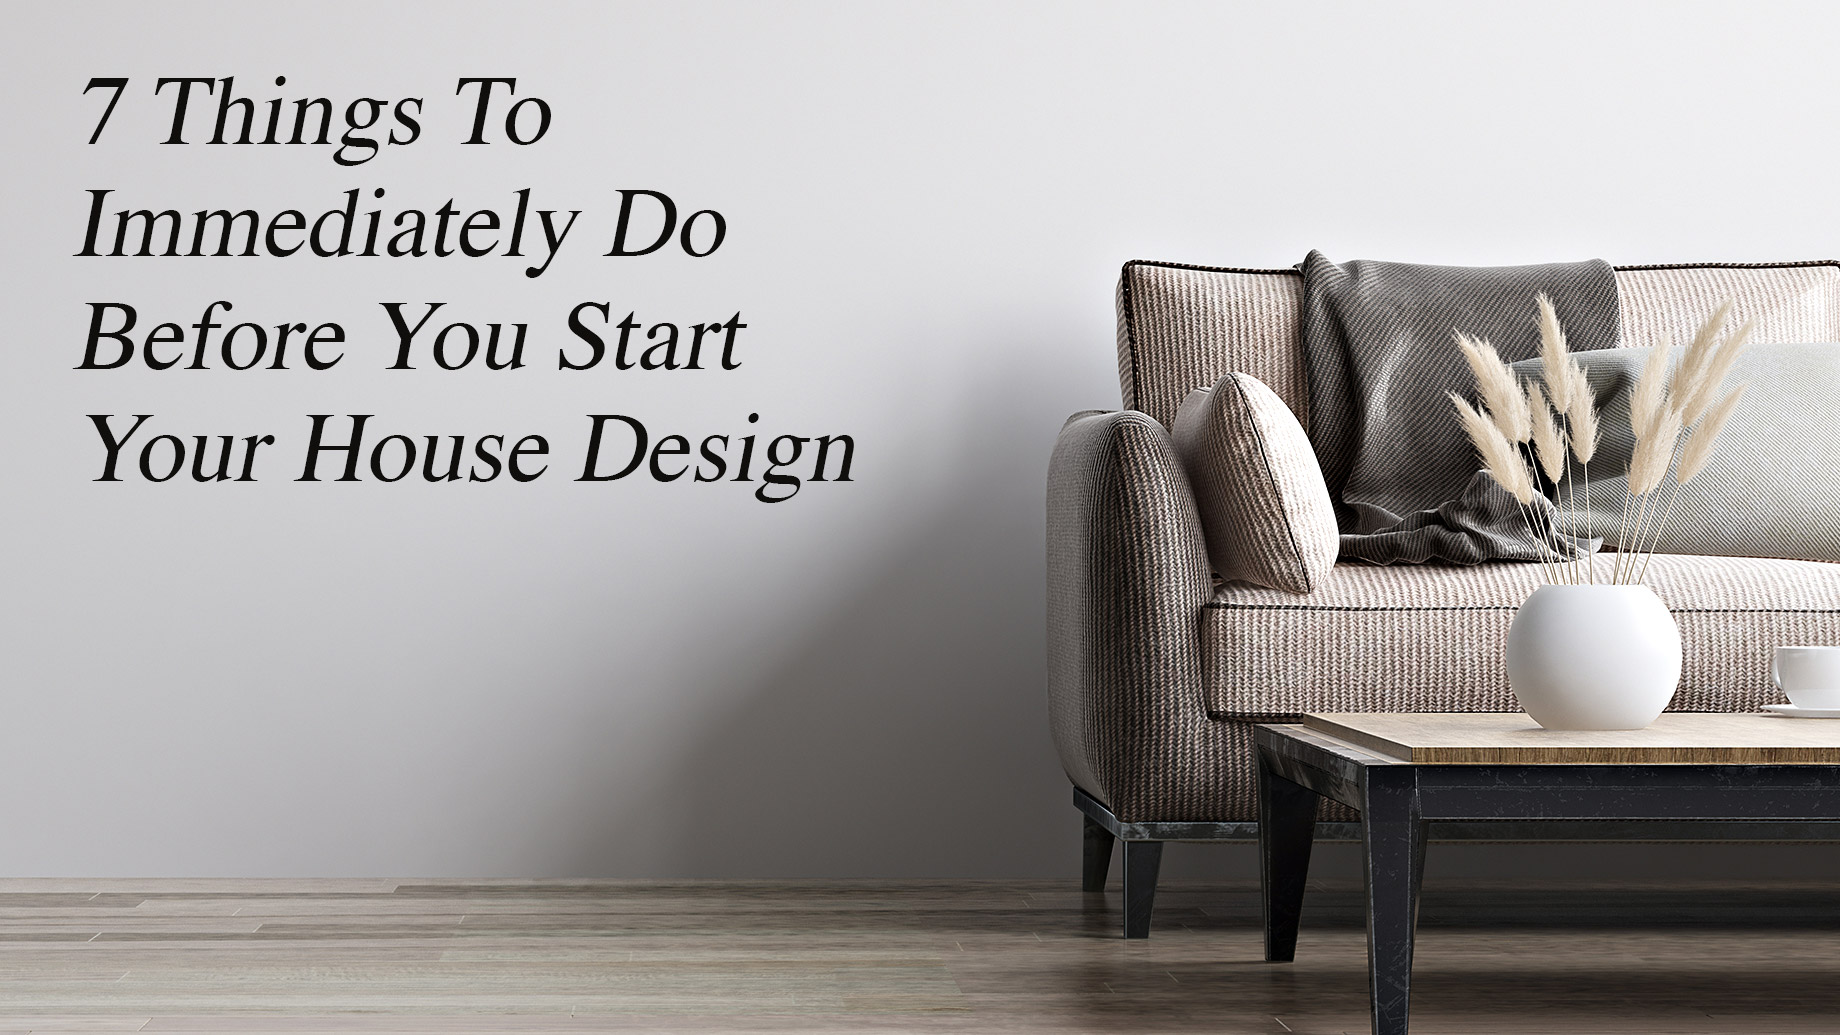 7 Things To Immediately Do Before You Start Your House Design